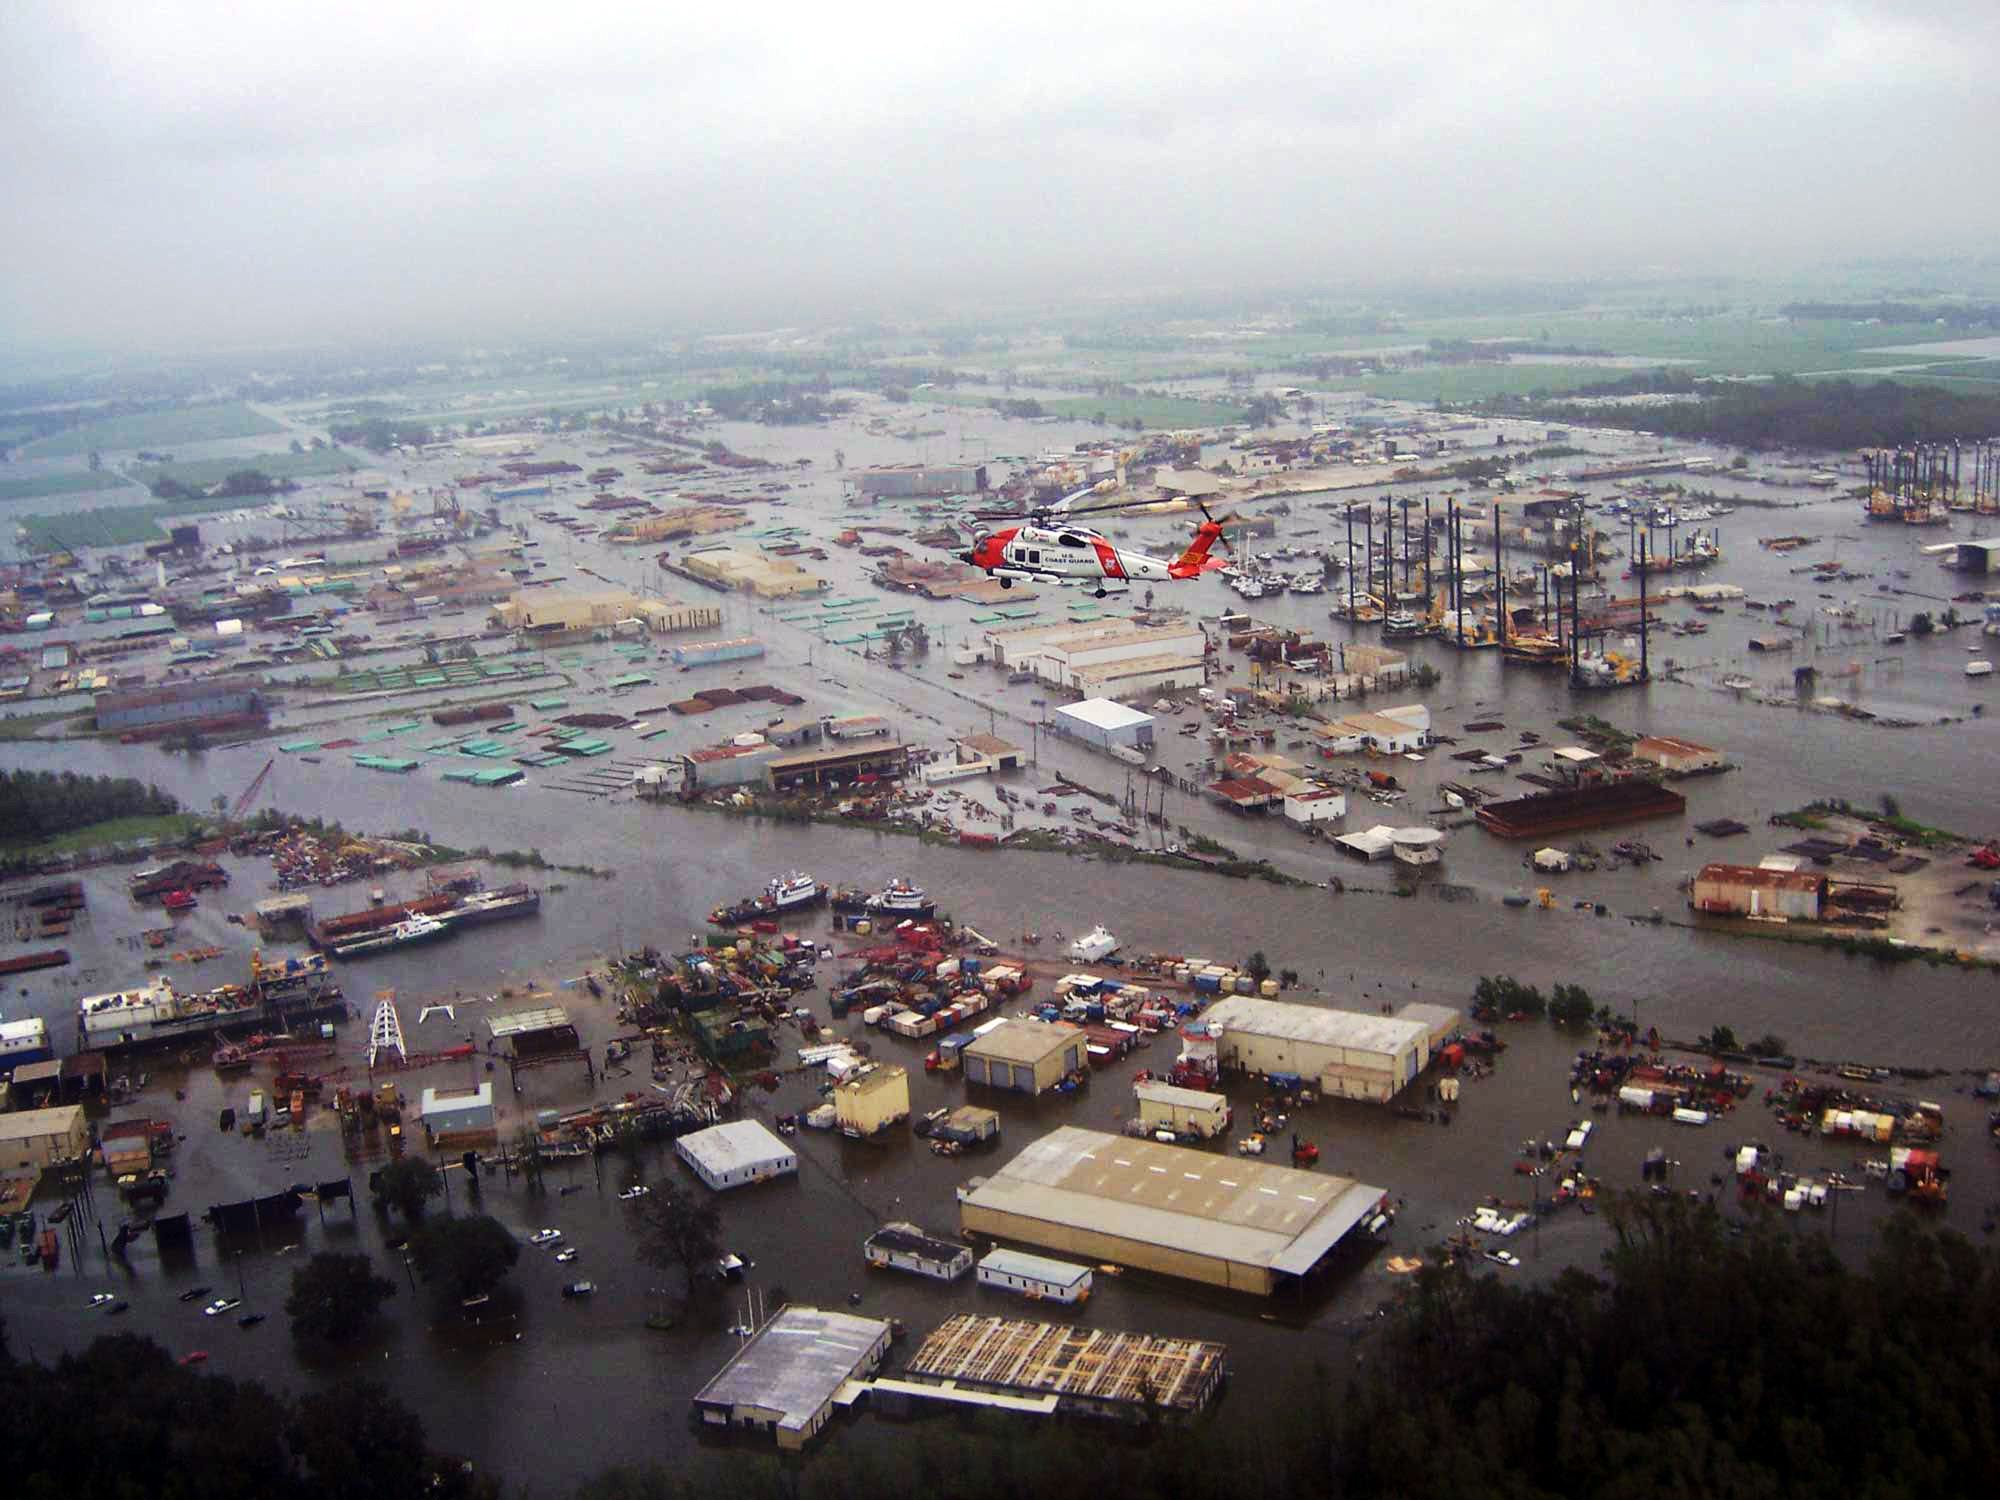 Hurricane Ike September 2008 Before Hitting Texas The Storm Ravaged Across Louisiana Large Areas Of Land Al Hurricane History New Iberia Hurricane Damage